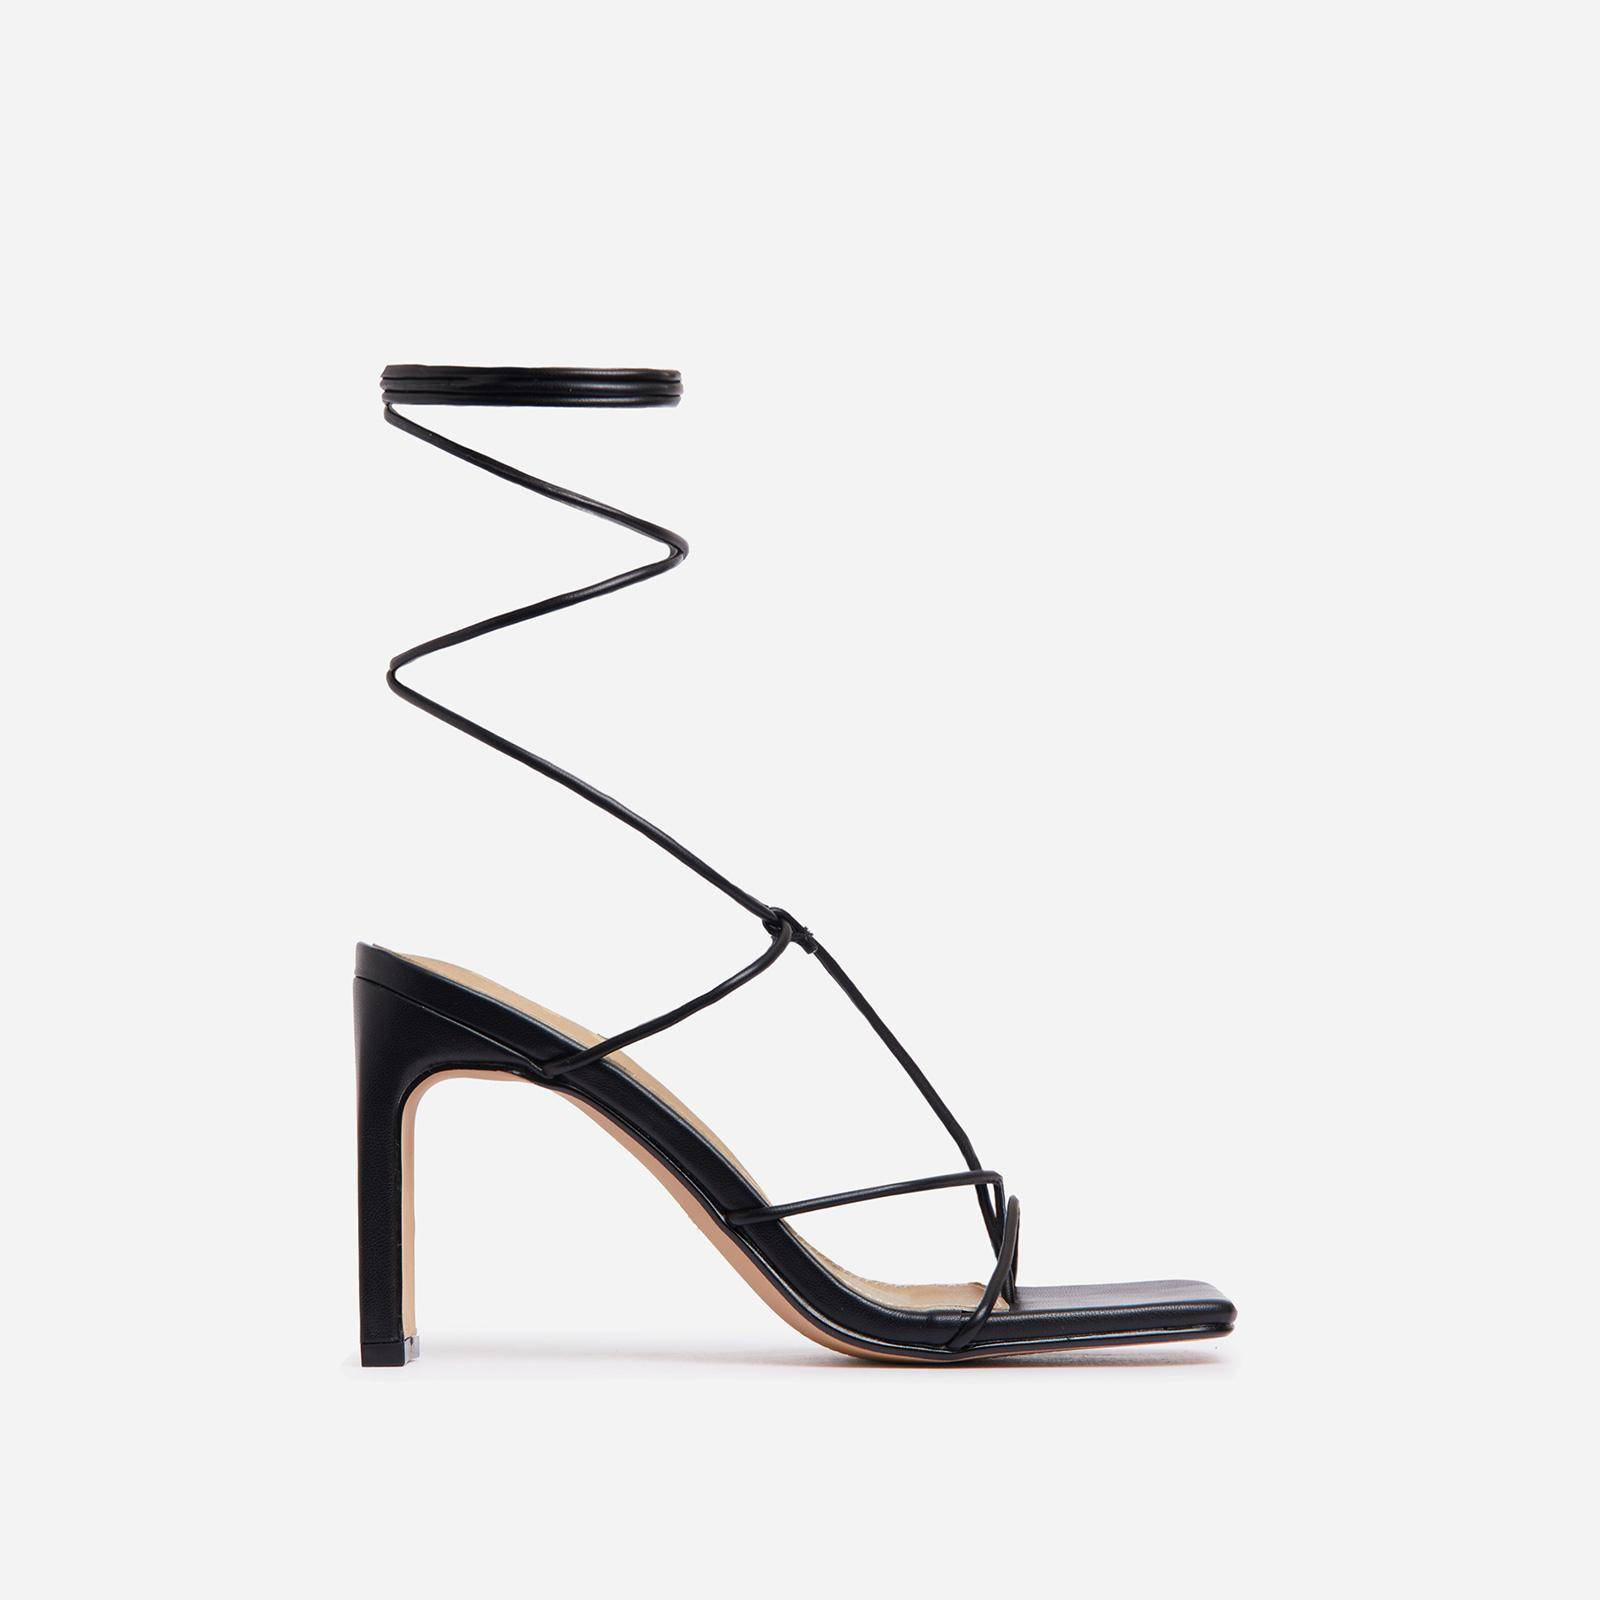 EGO Sweet Dream Square Toe Lace Up Thin Block Heel In Black Faux Leather, Black  - female - Size: 10